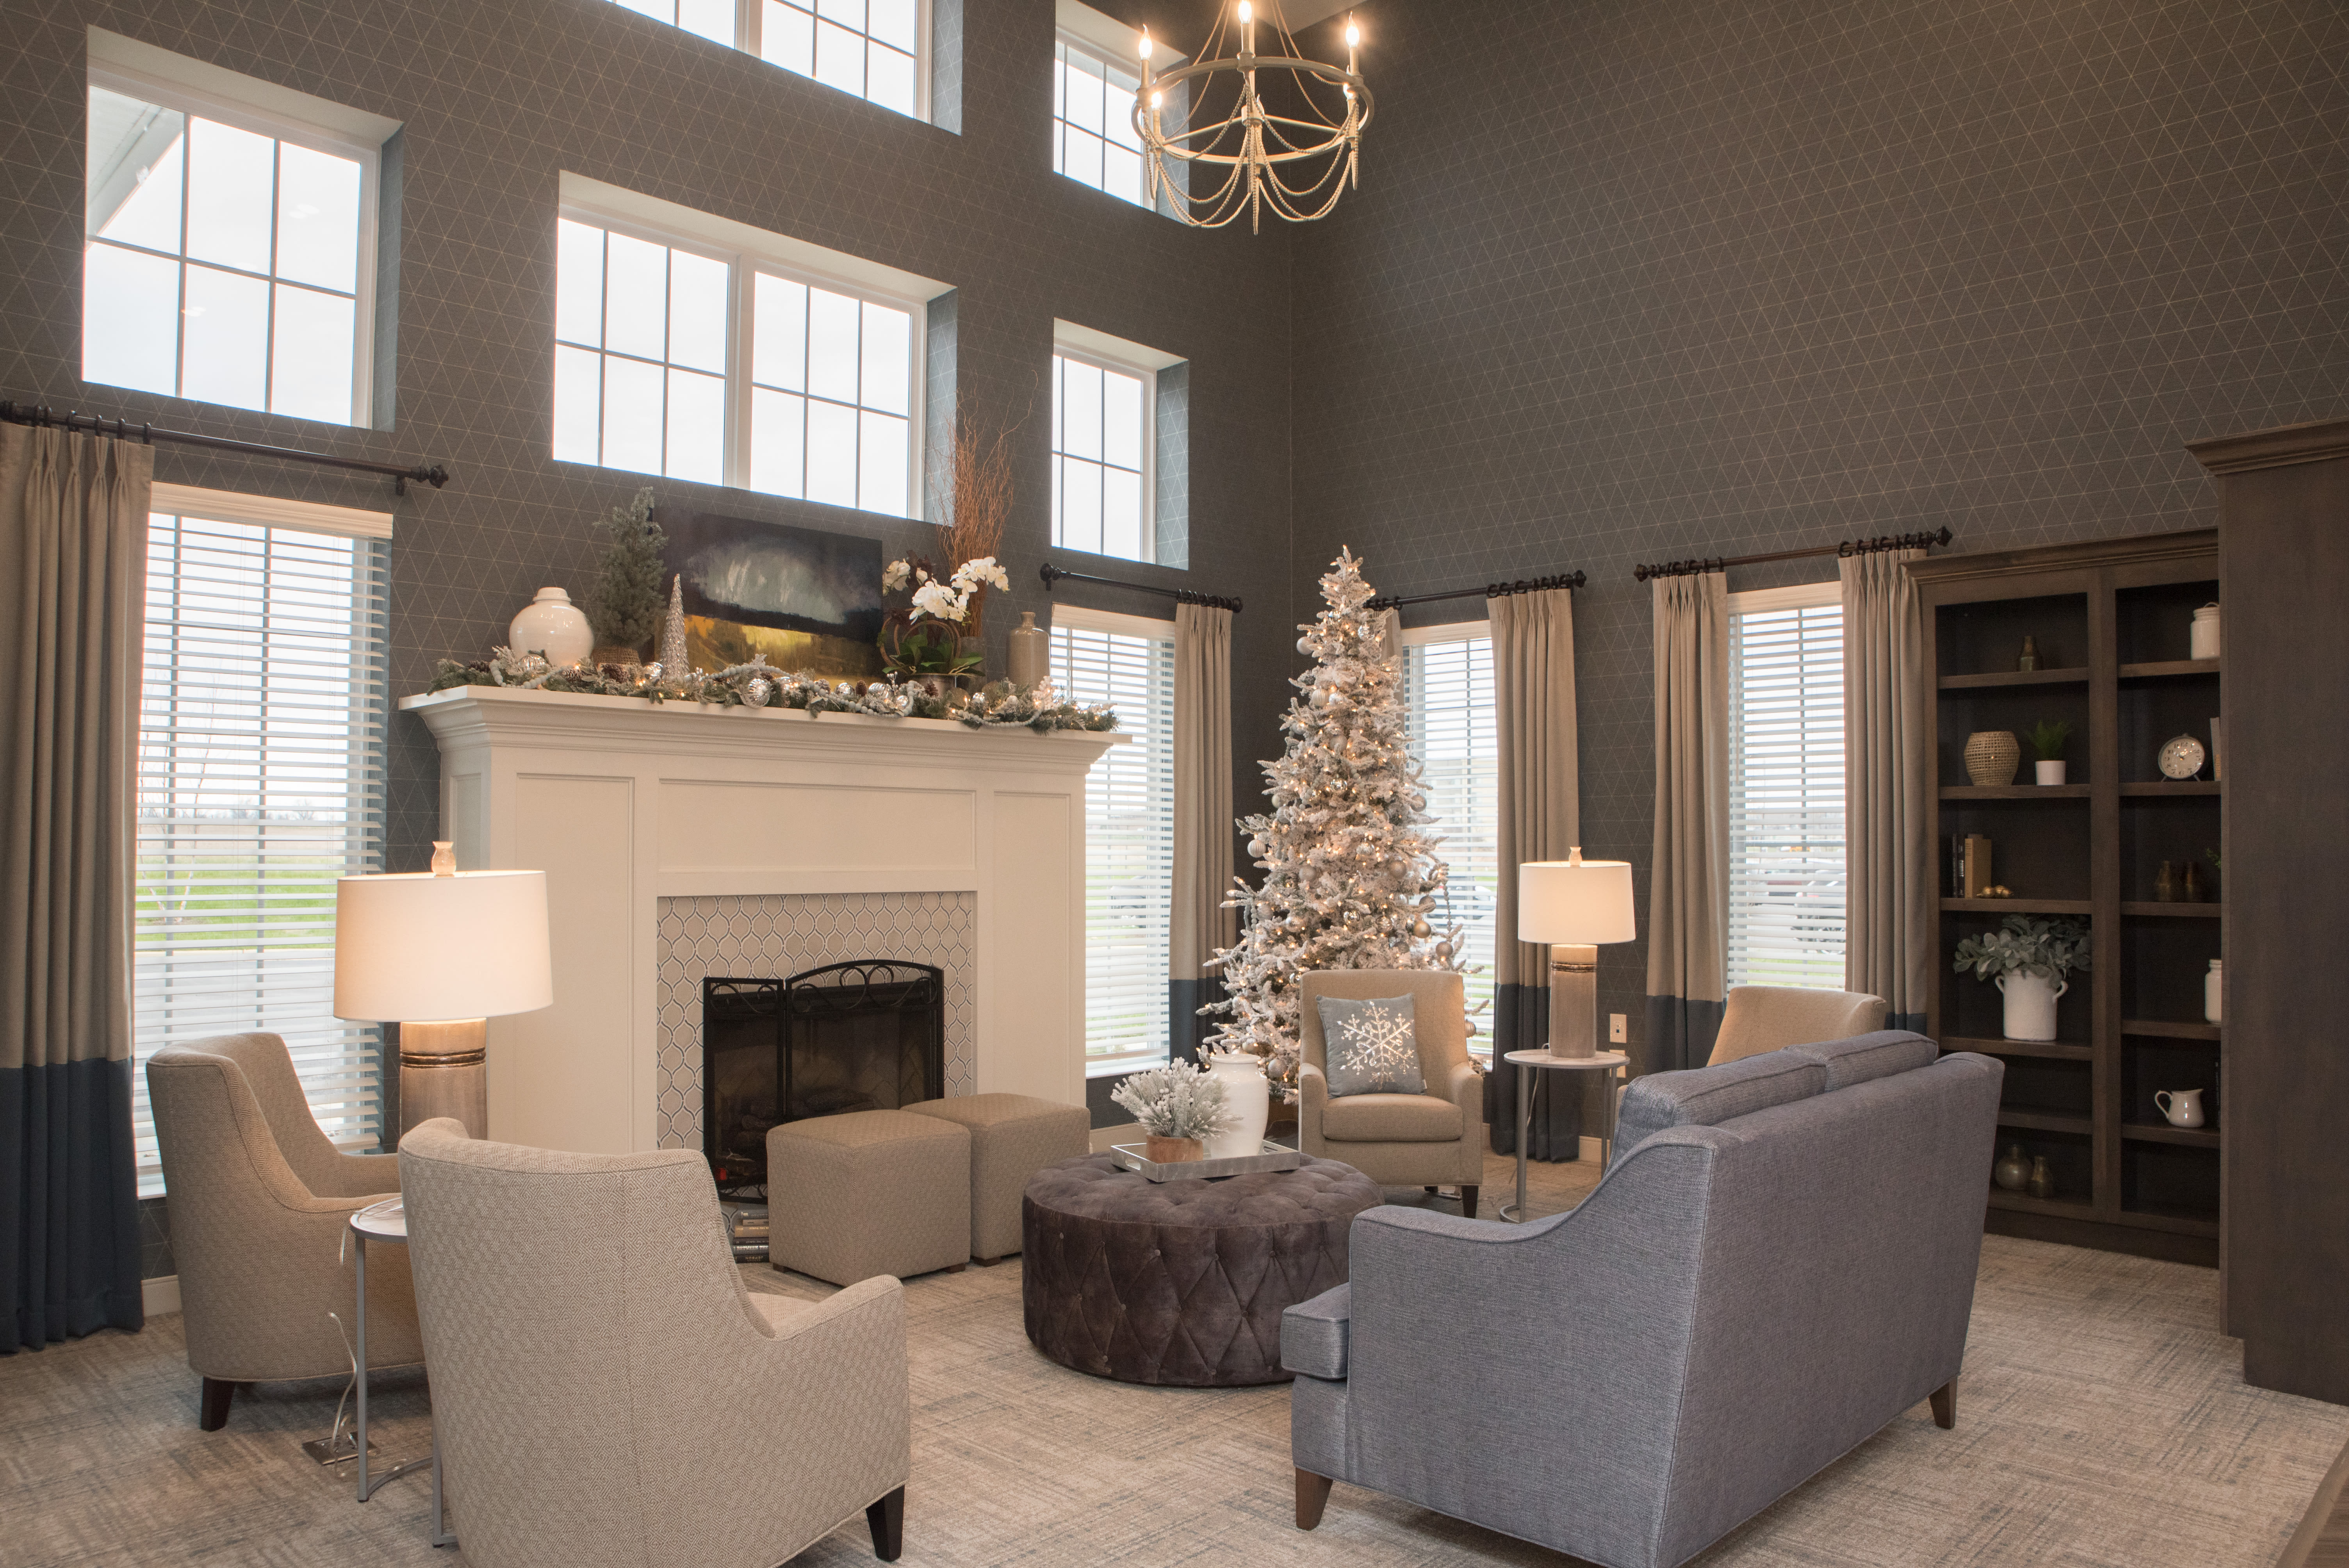 Fireplace and comfy chairs at Cooper Trail Senior Living in Bardstown, Kentucky